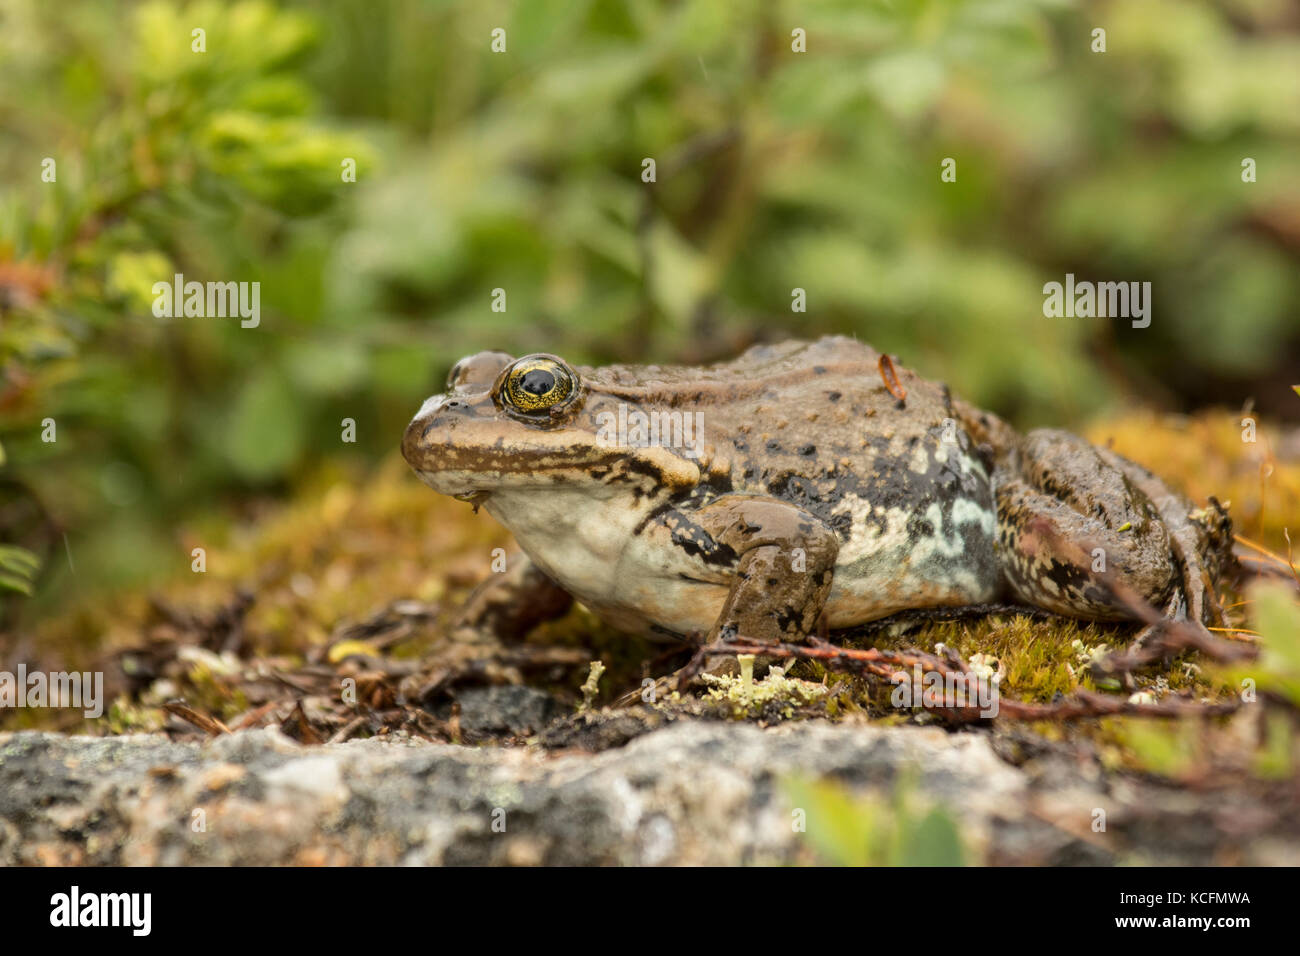 Columbia Spotted Frog, Lithobates lutieaventris, Rana lutieaventris, British Columbia, Canada Stock Photo